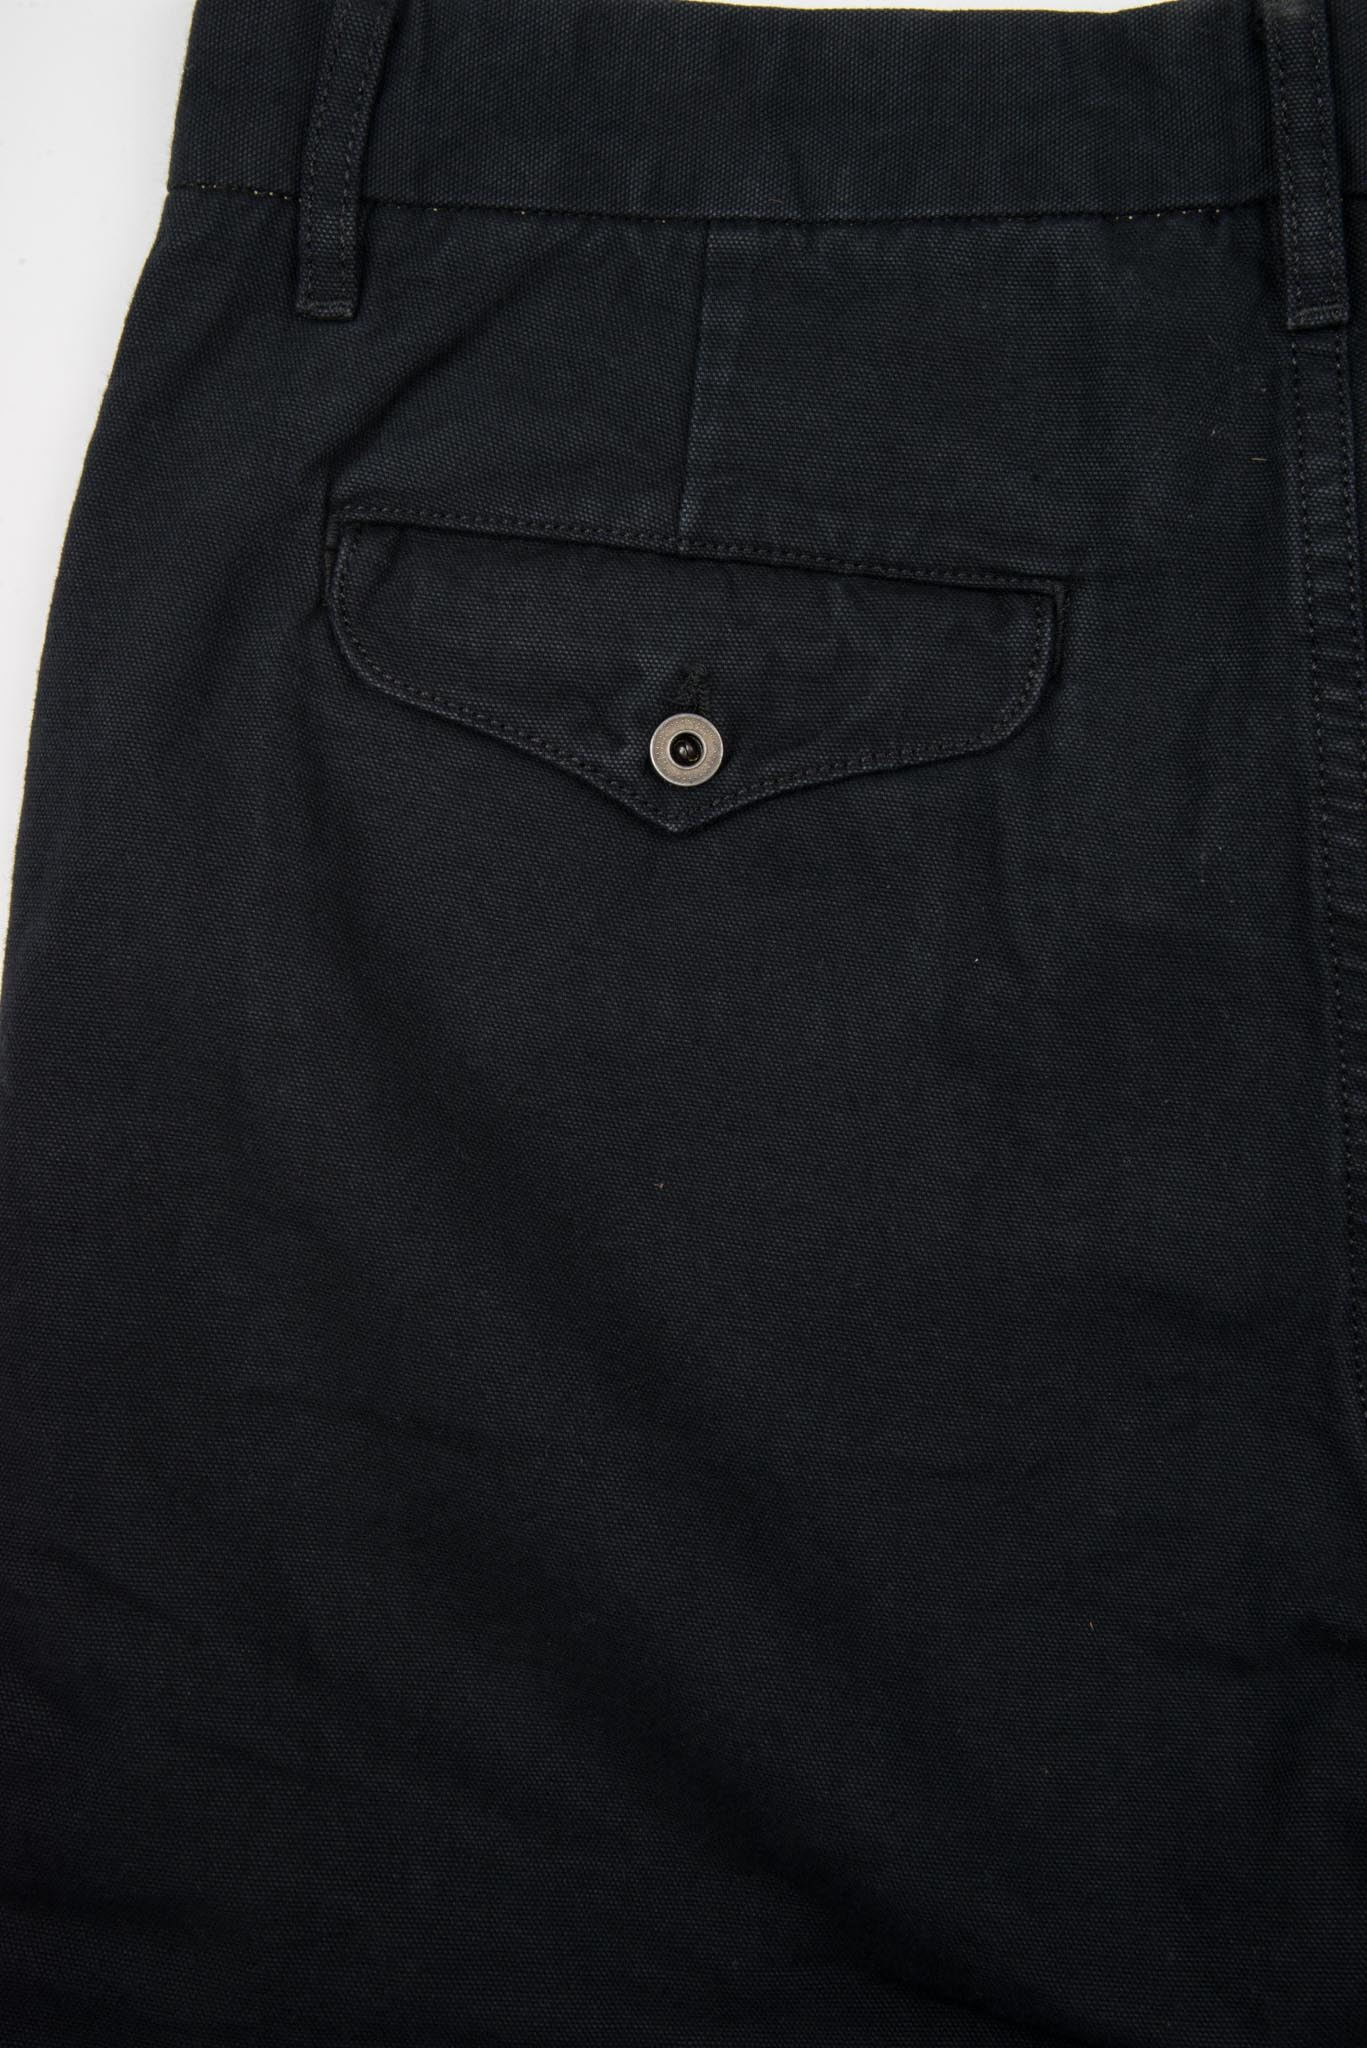 Workers Chino Slim Fit <span> Black </span>